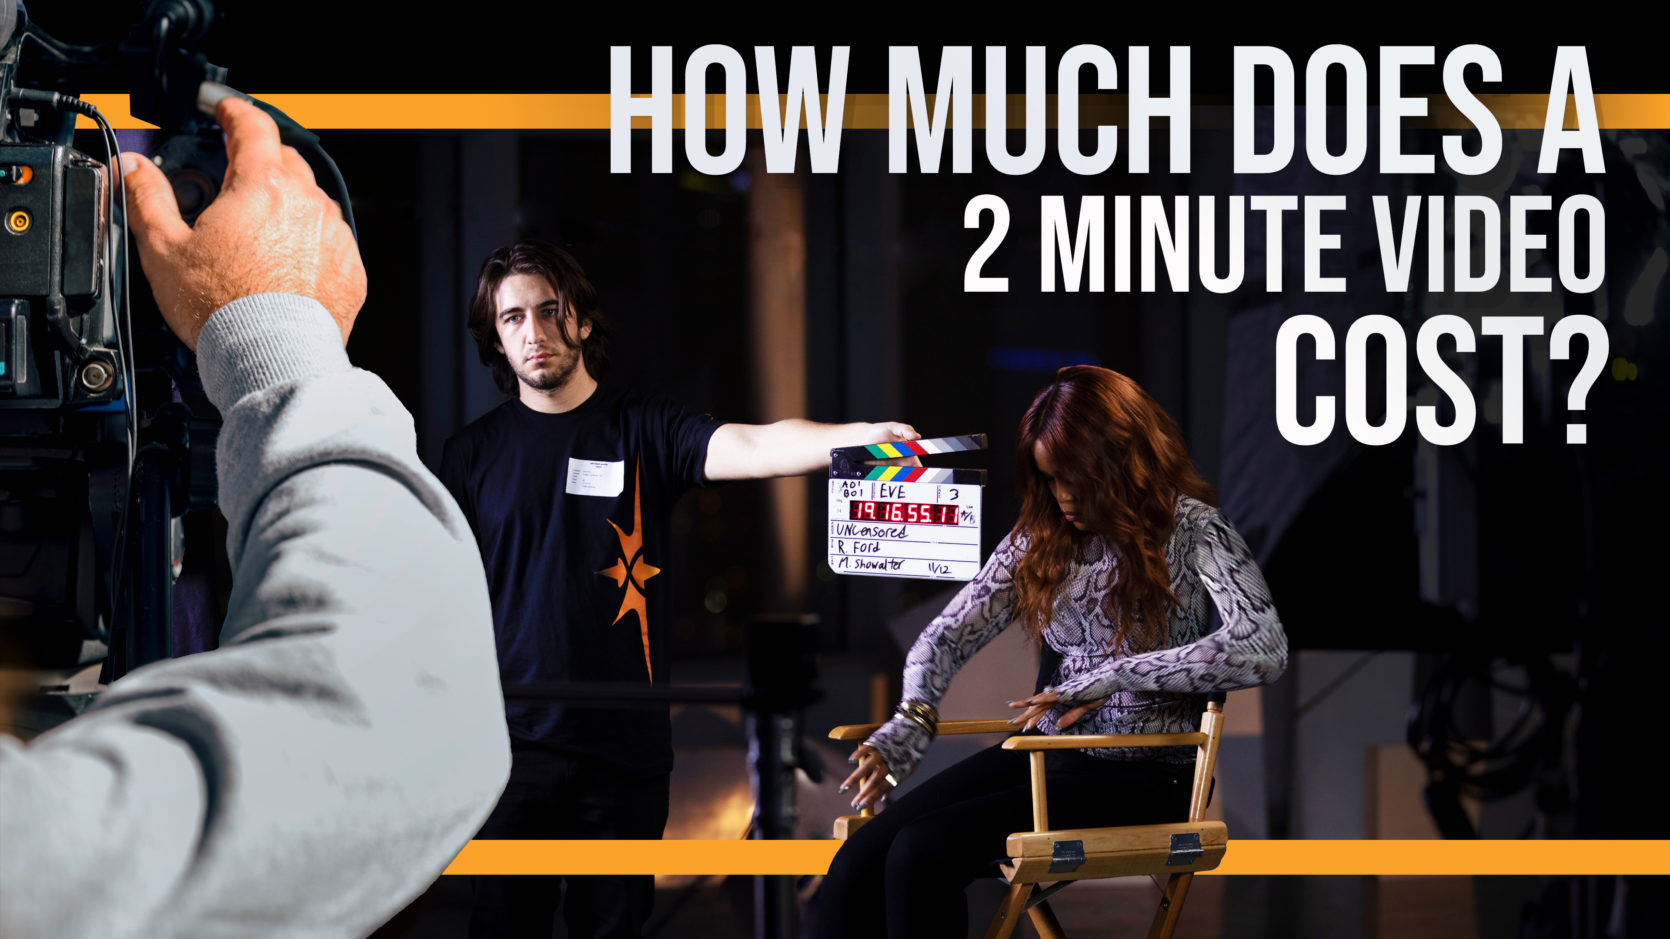 How Much Does a 2 Minute Video Cost?